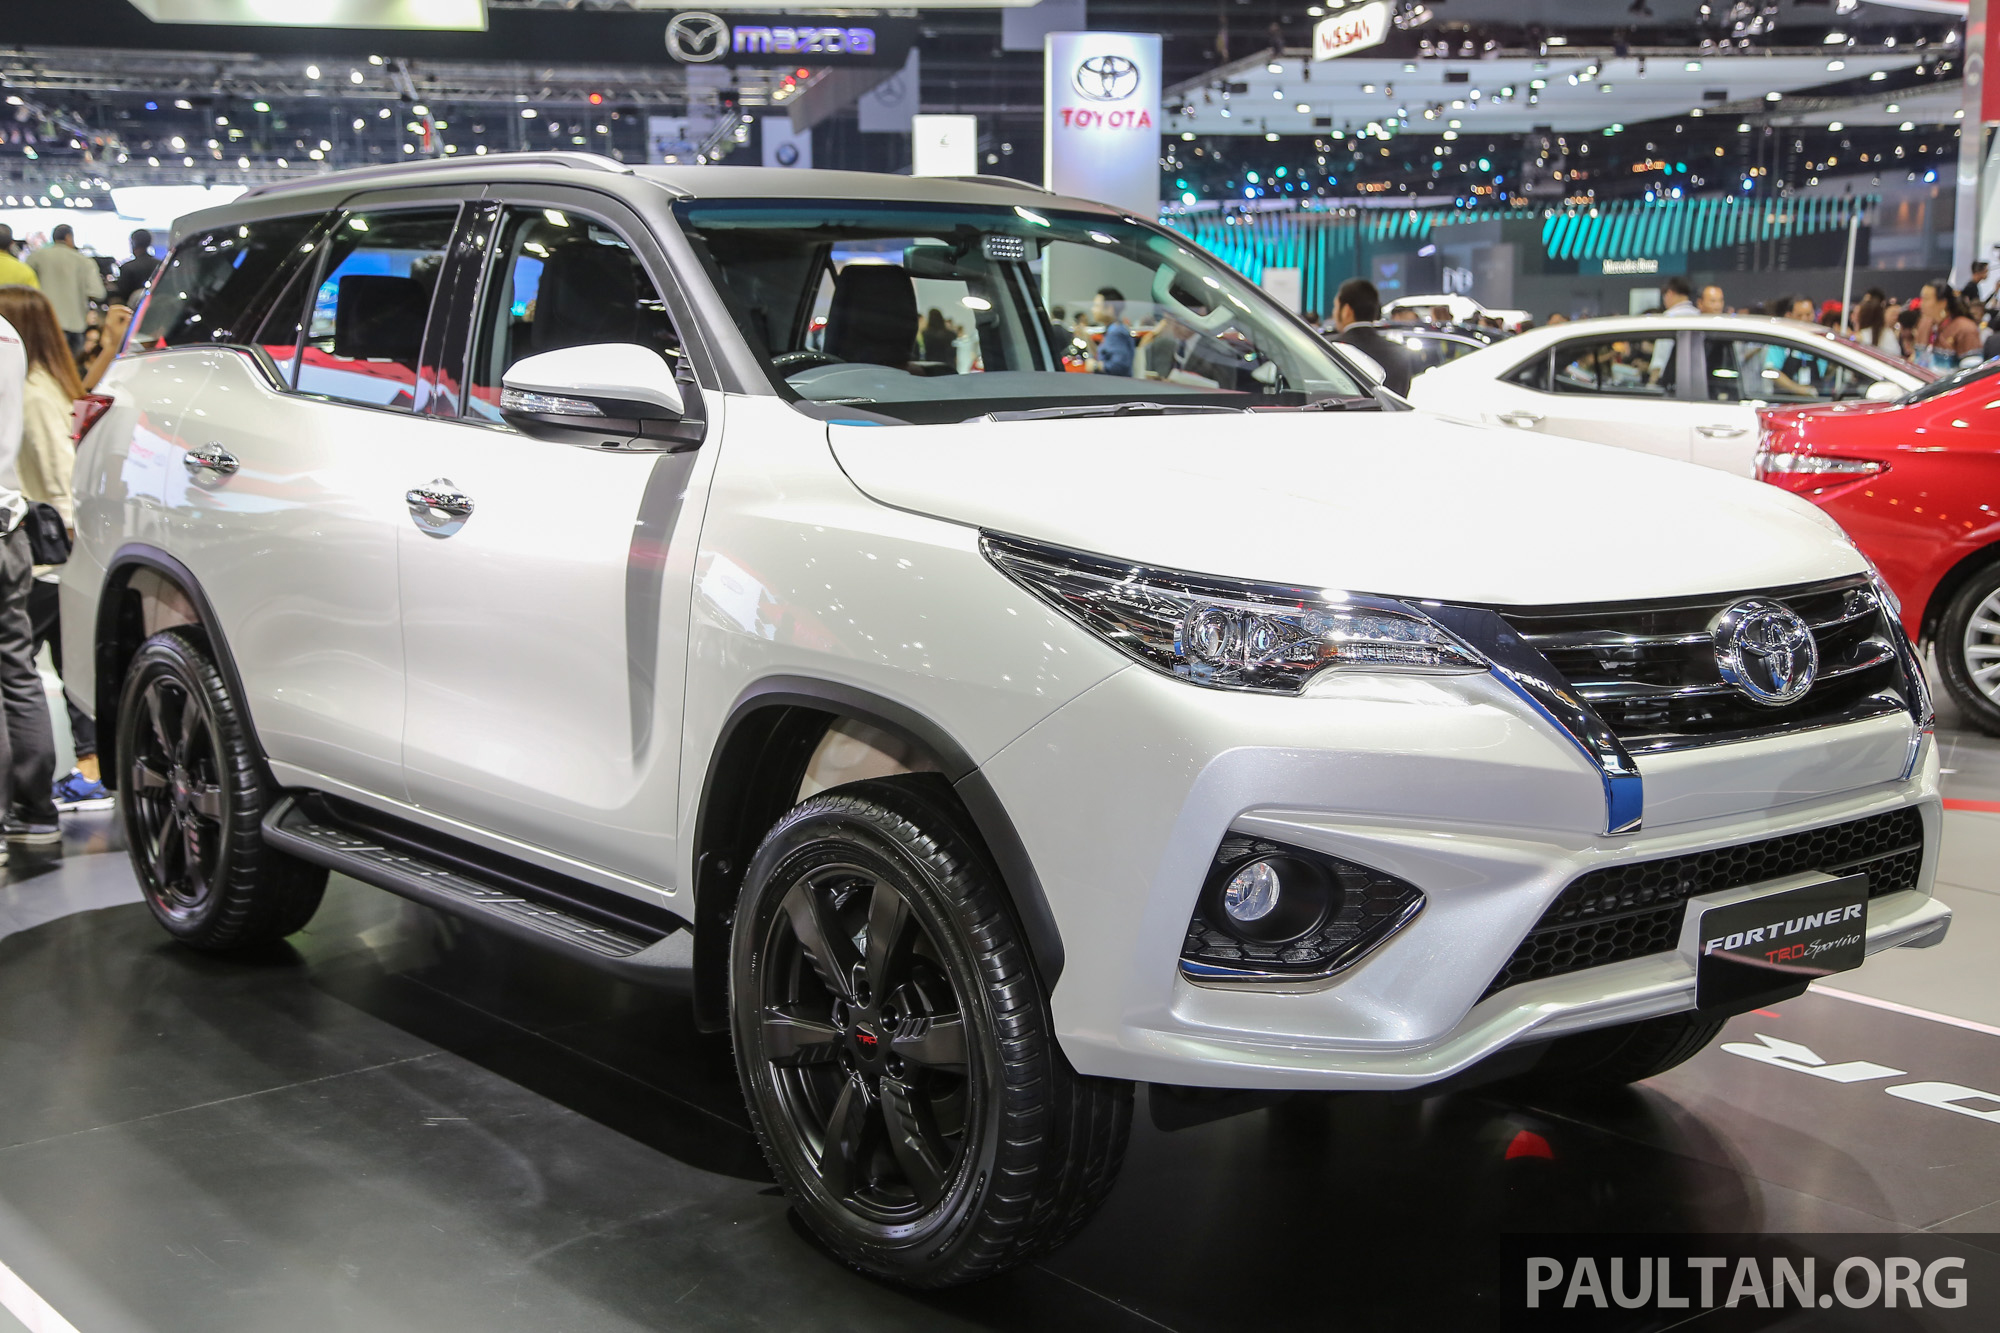 GALLERY Toyota Fortuner TRD Sportivo At BIMS 2016 Paul